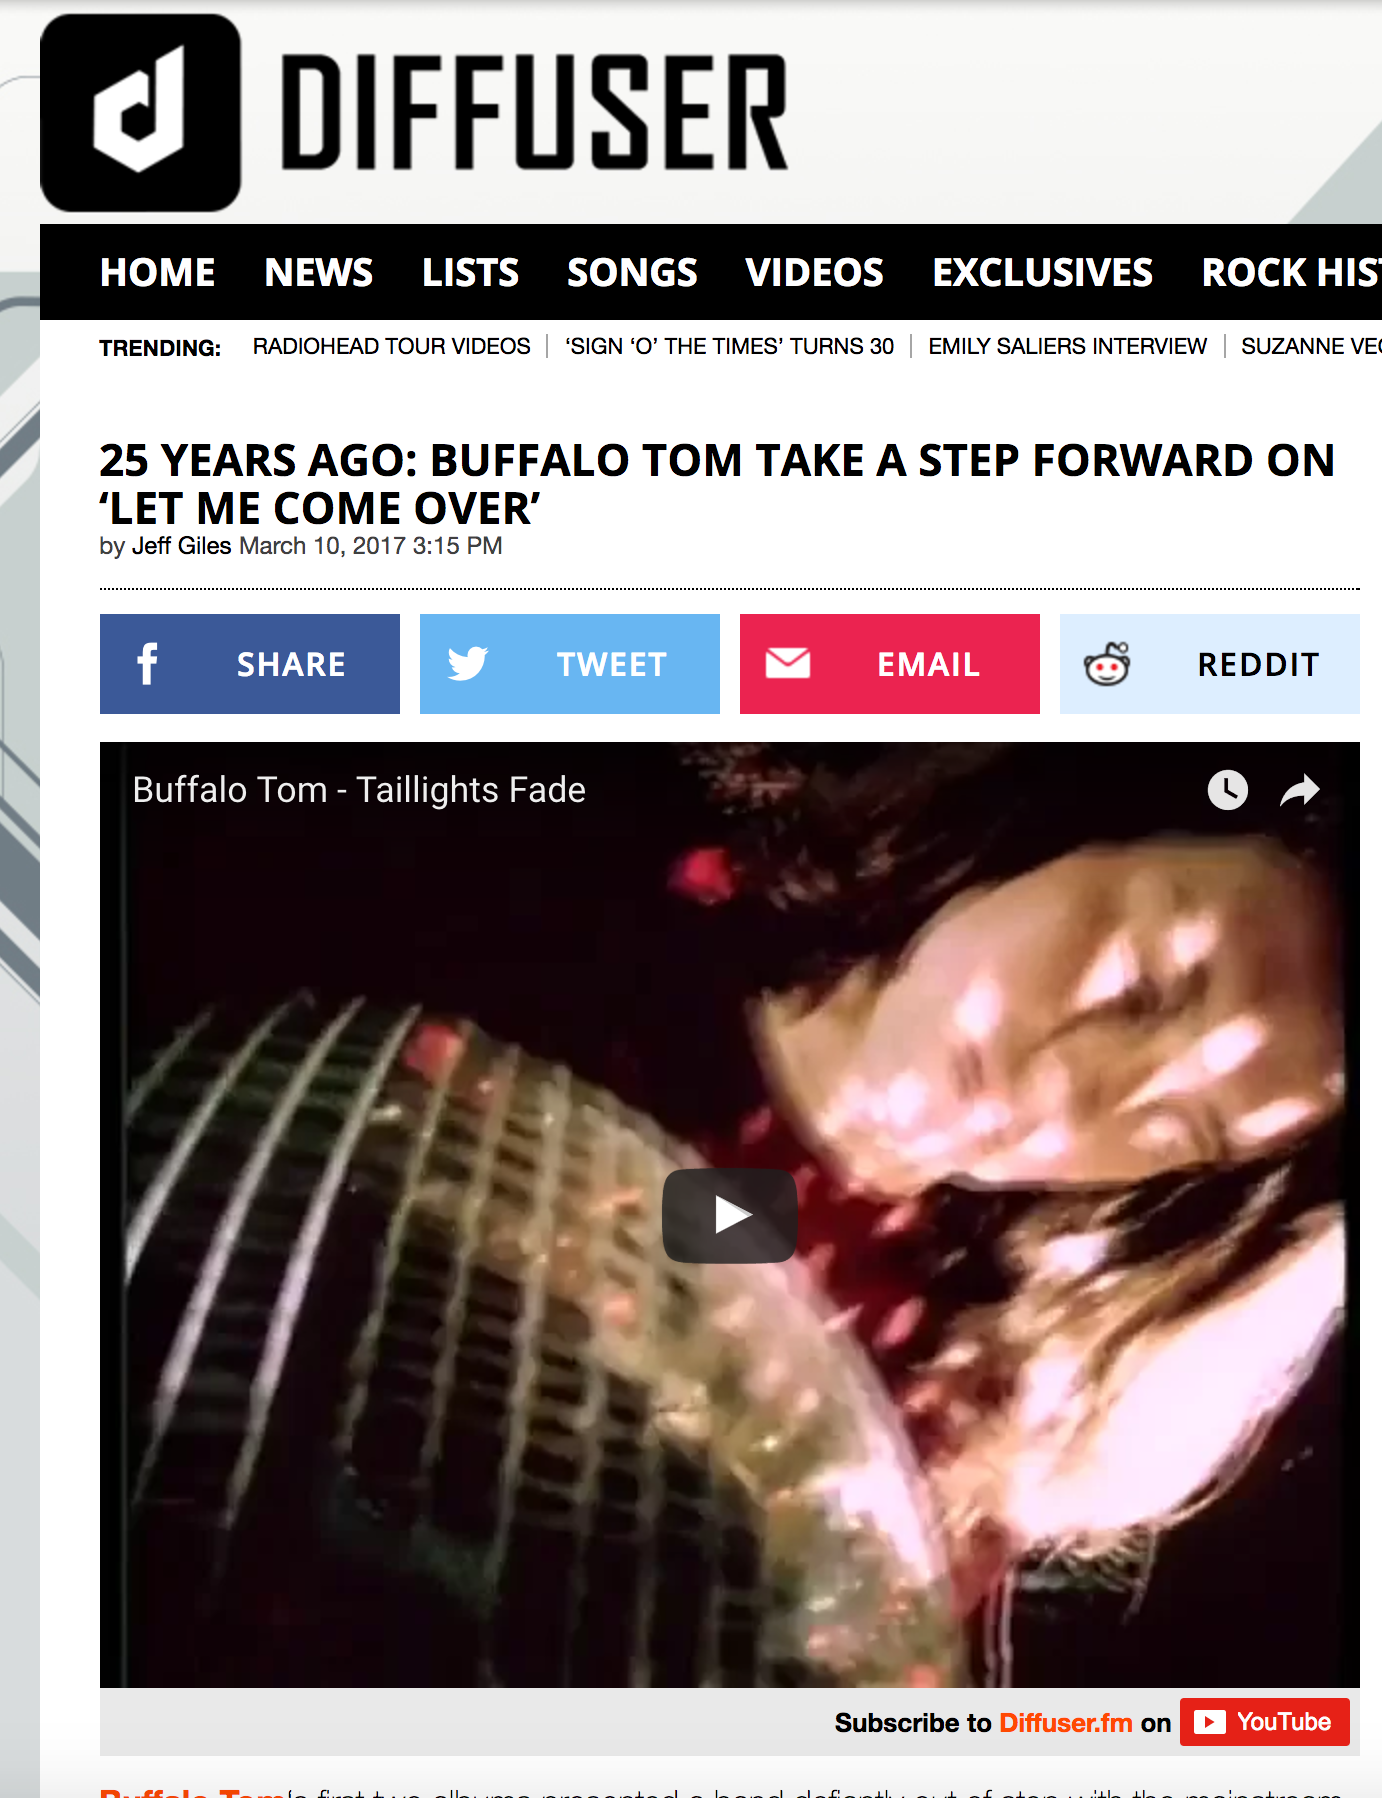 <b>Diffuser</b>: 25 Years Ago: Buffalo Tom Take a Step Forward on 'Let Me Come Over'